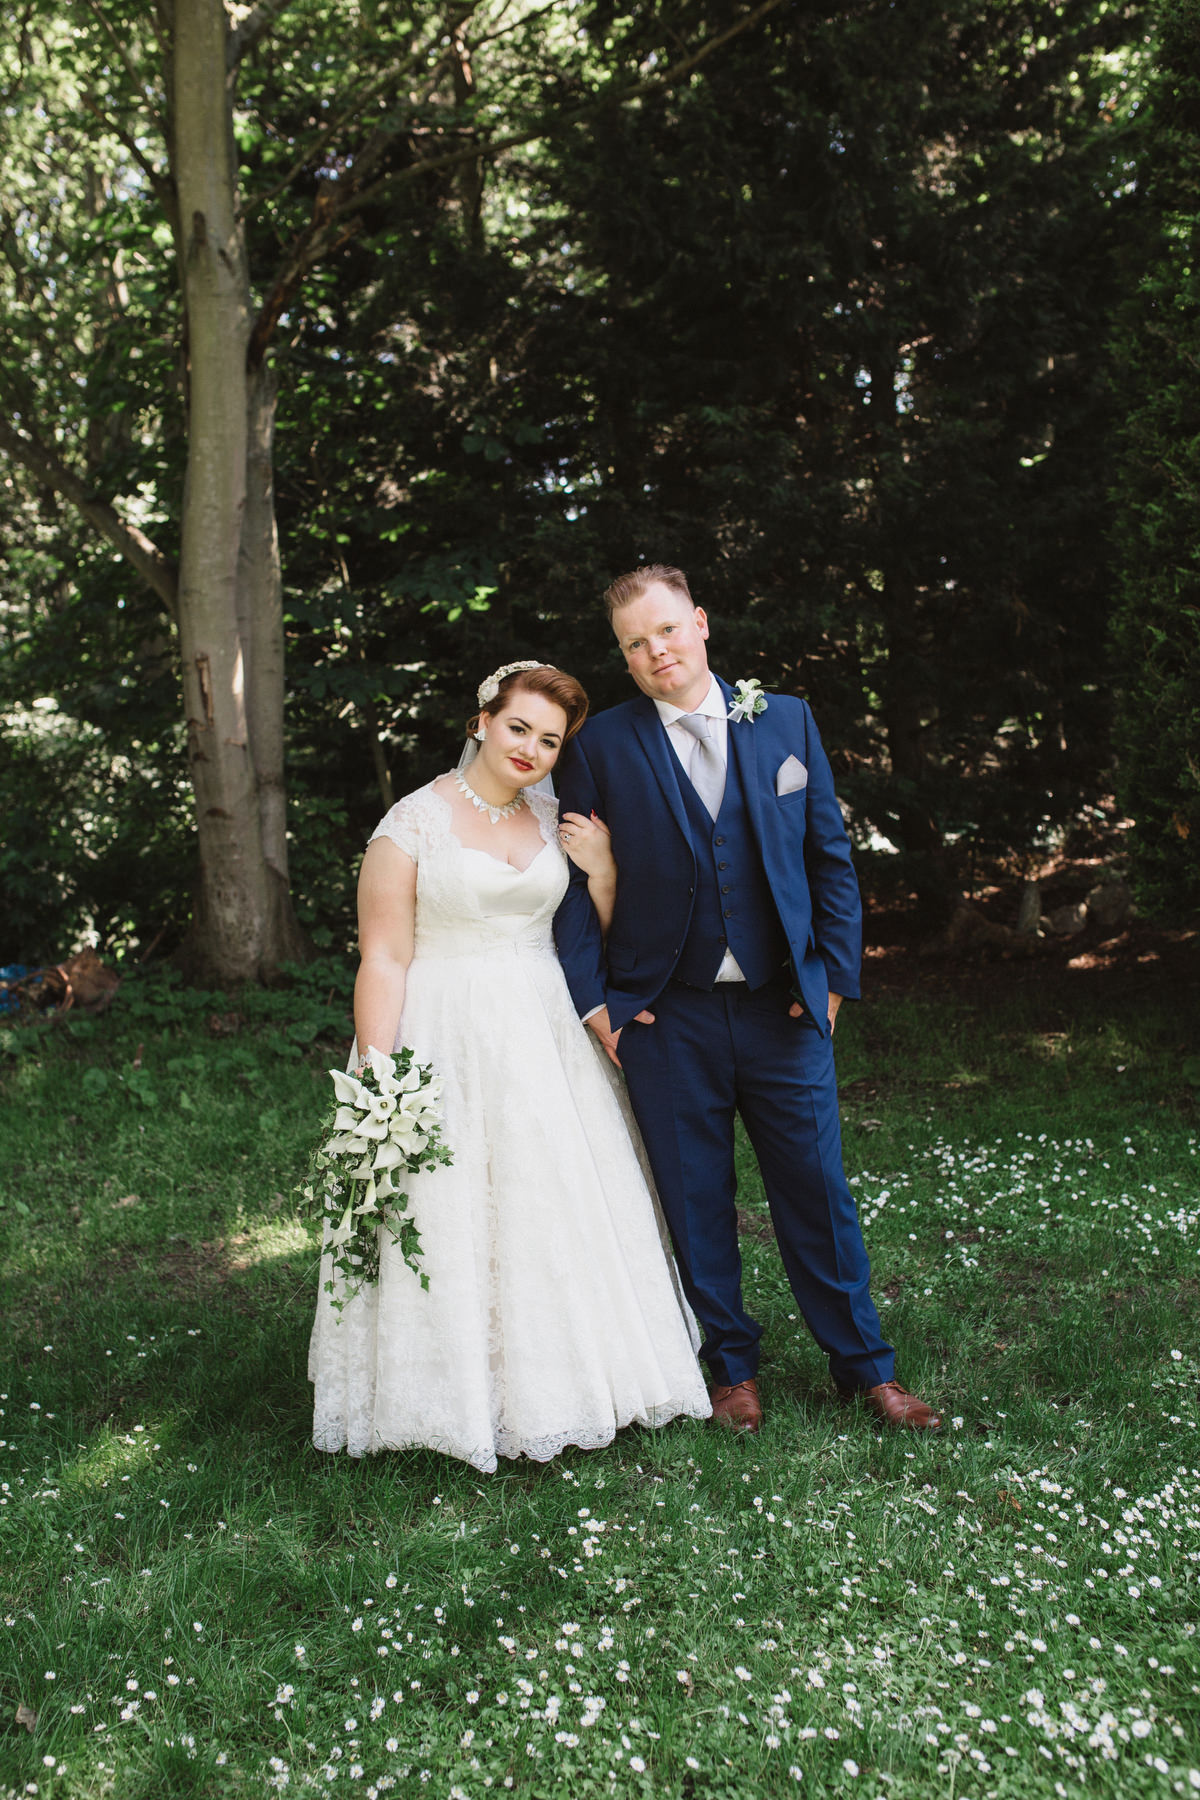 bride and groom outside in garden at OLD RECTORY CROSTWICK WEDDING PHOTOGRAPHY